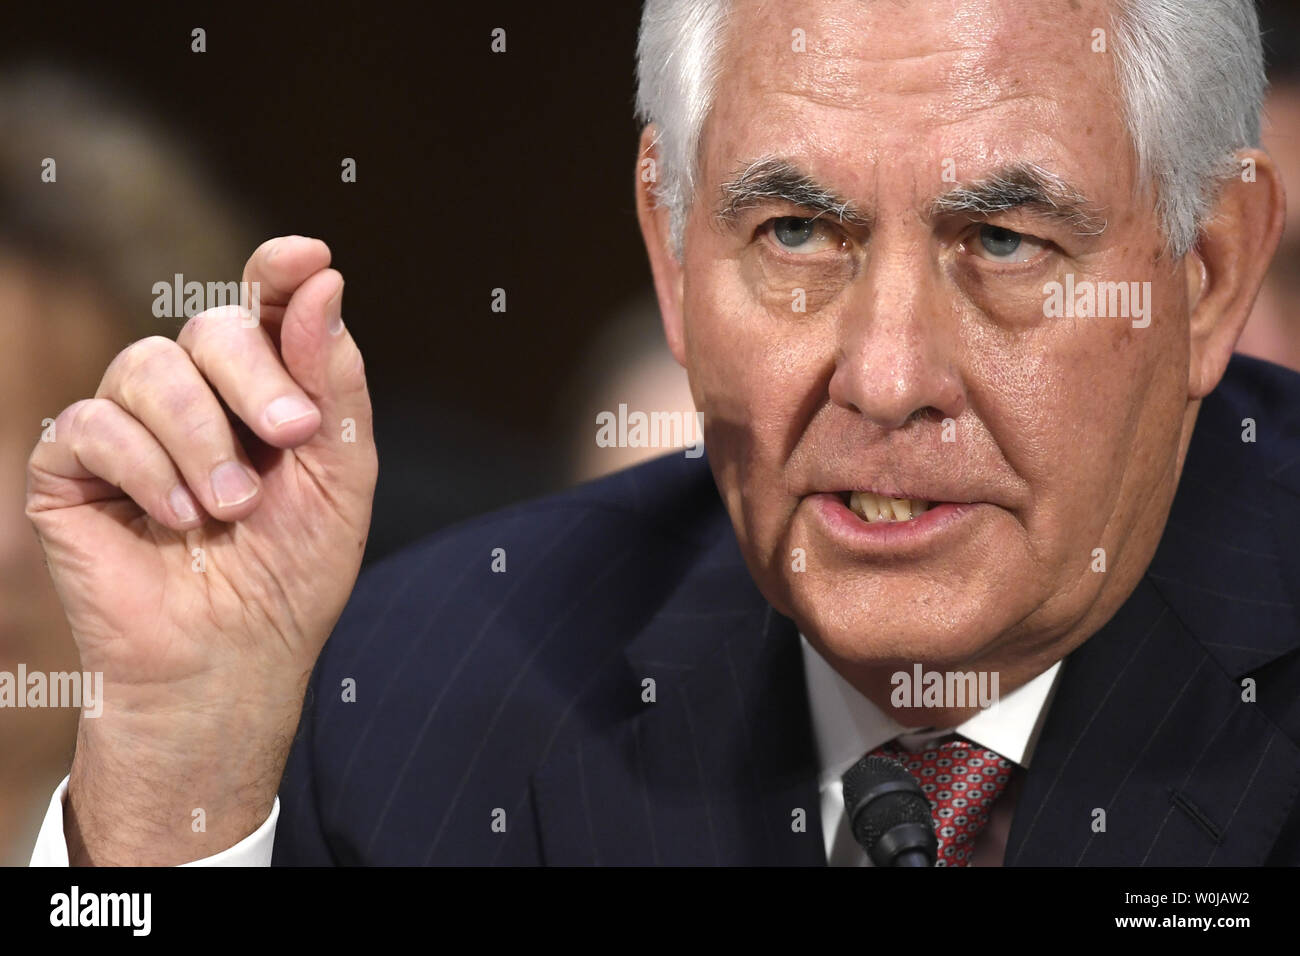 Former ExxonMobil CEO Rex Tillerson, nominated for secretary of state, responds to questioning during Senate Foreign Relations Committee confirmation hearings, on Capitol Hill, January 11, 2017, in Washington, DC. Tillerson's close business relationship with Russia is expected to be scrutinized by the panel.             Photo by Mike Theiler/UPI - Stock Image